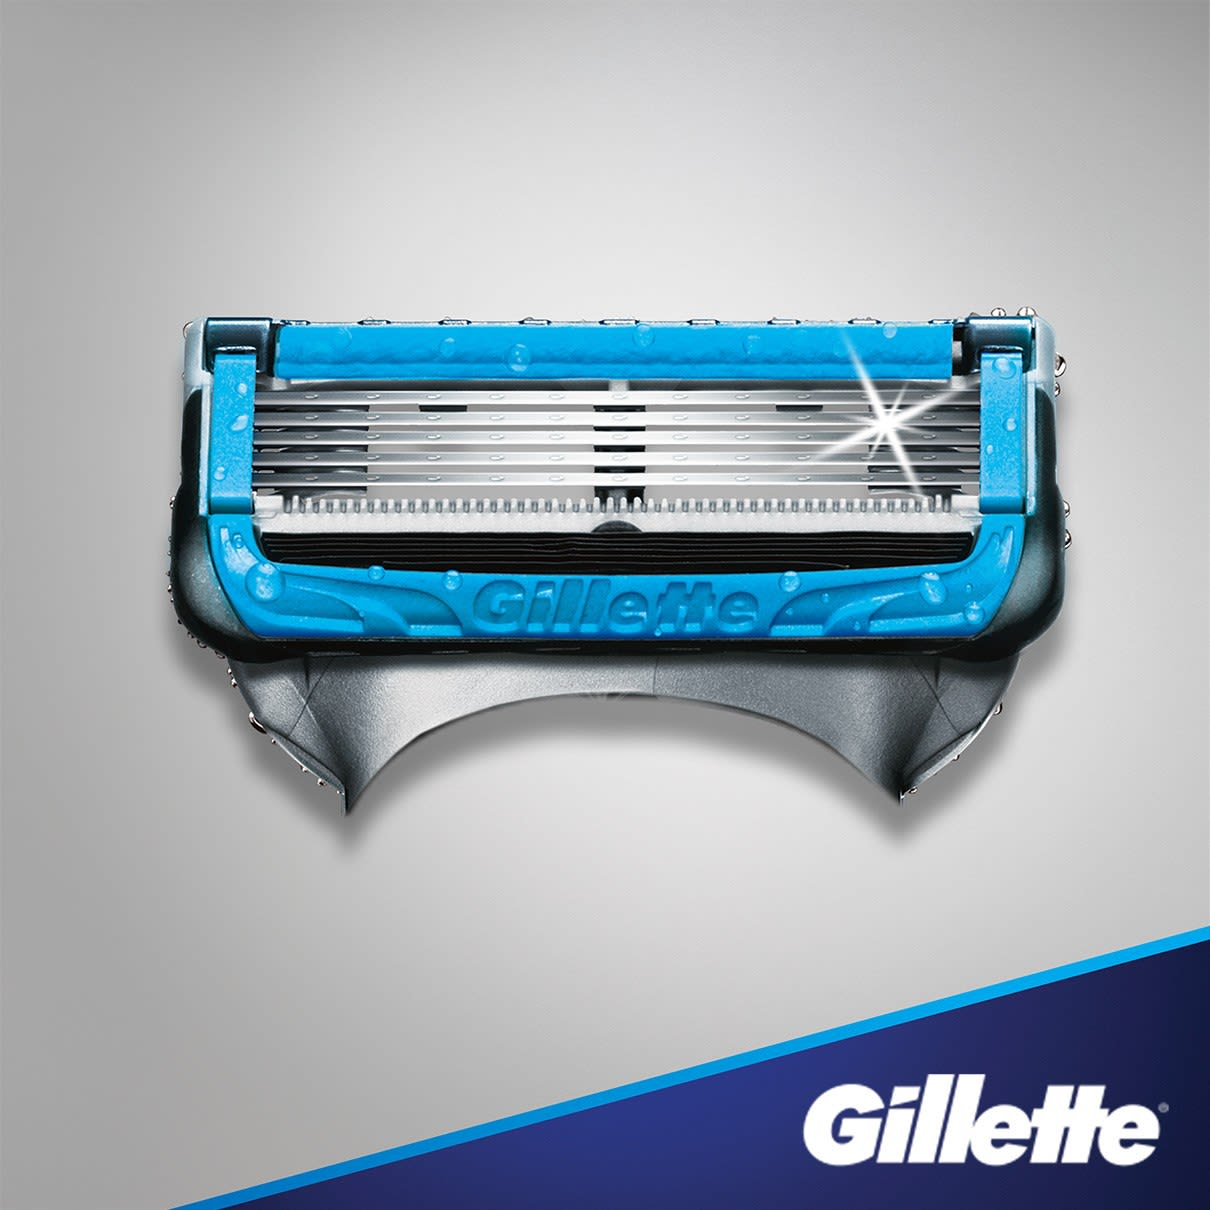 Gillette Fusion5 ProShield Chill Ostrza do maszynek do golenia